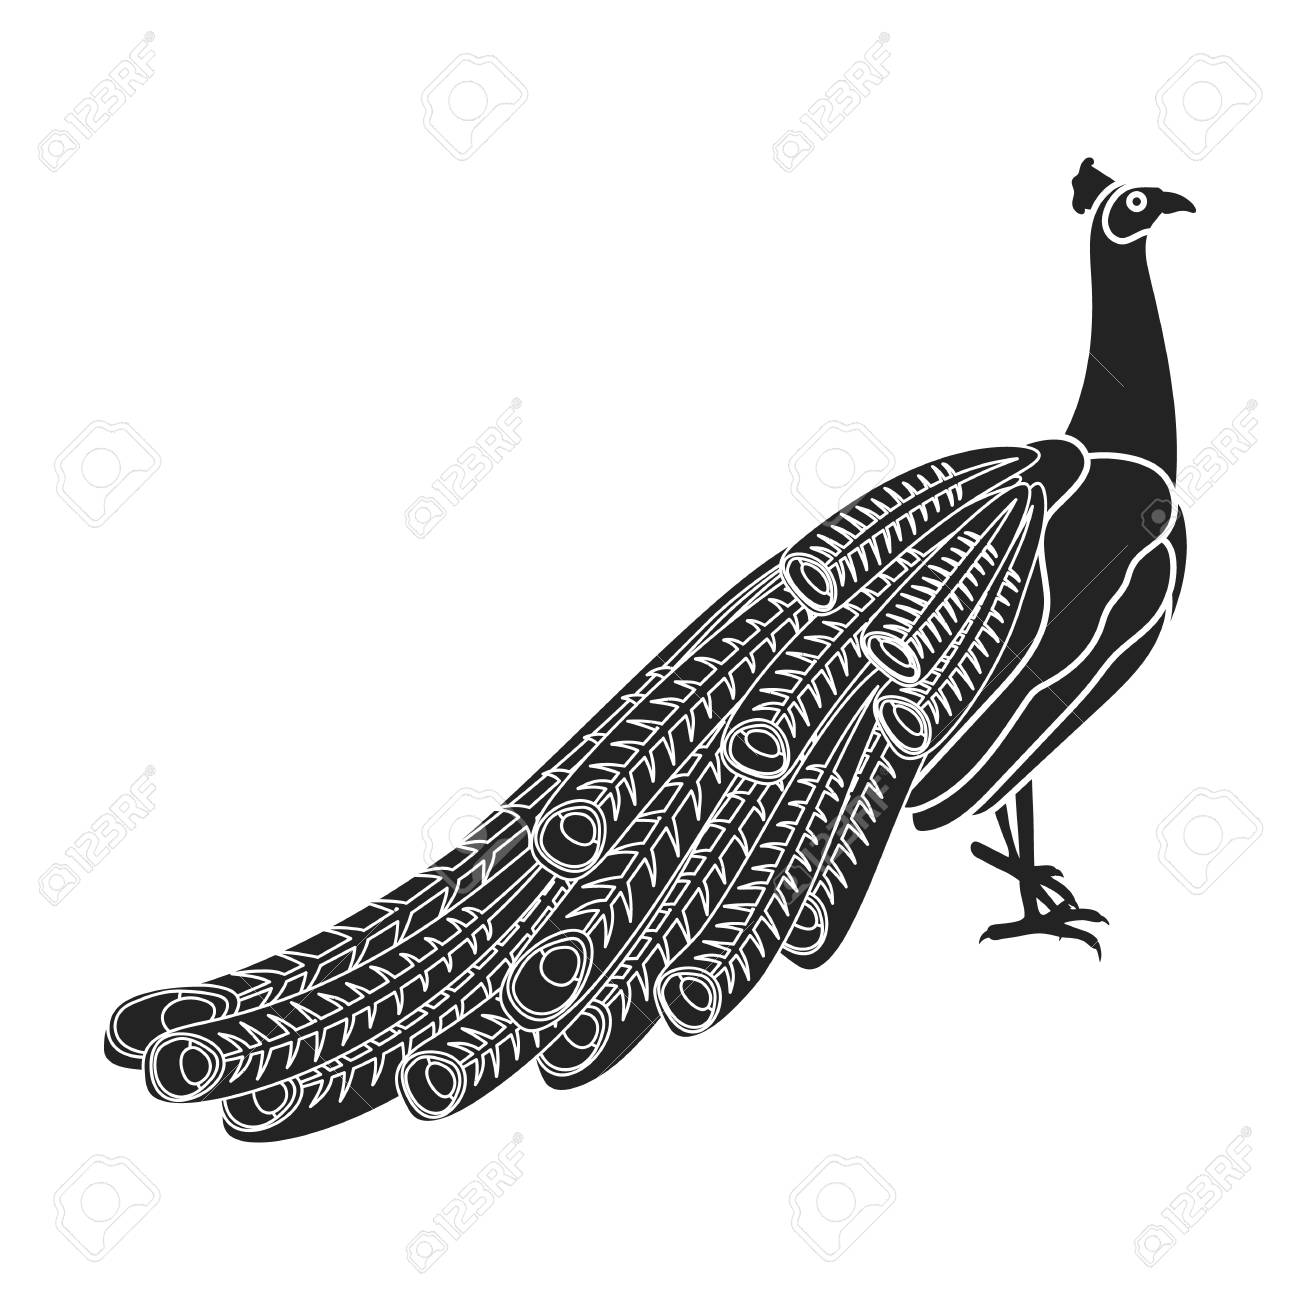 peacock icon in black style isolated on white background bird royalty free cliparts vectors and stock illustration image 68250611 peacock icon in black style isolated on white background bird